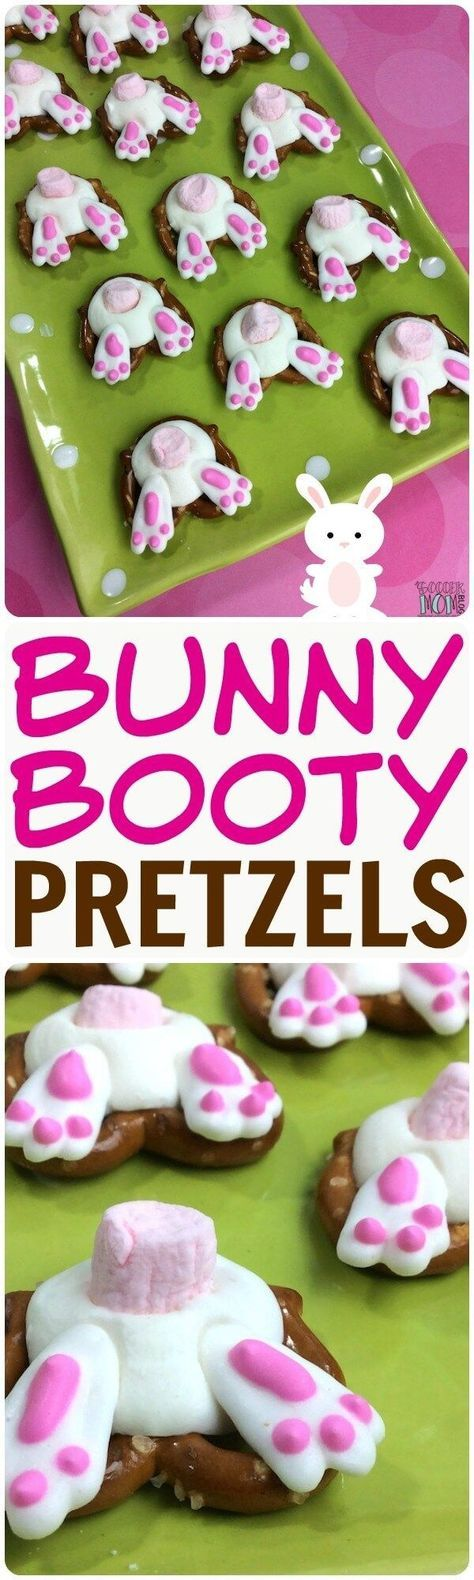 1142 best easter recipes images on pinterest craft decorating an easy easter recipe that kids of all ages can help make bunny butt pretzels negle Choice Image